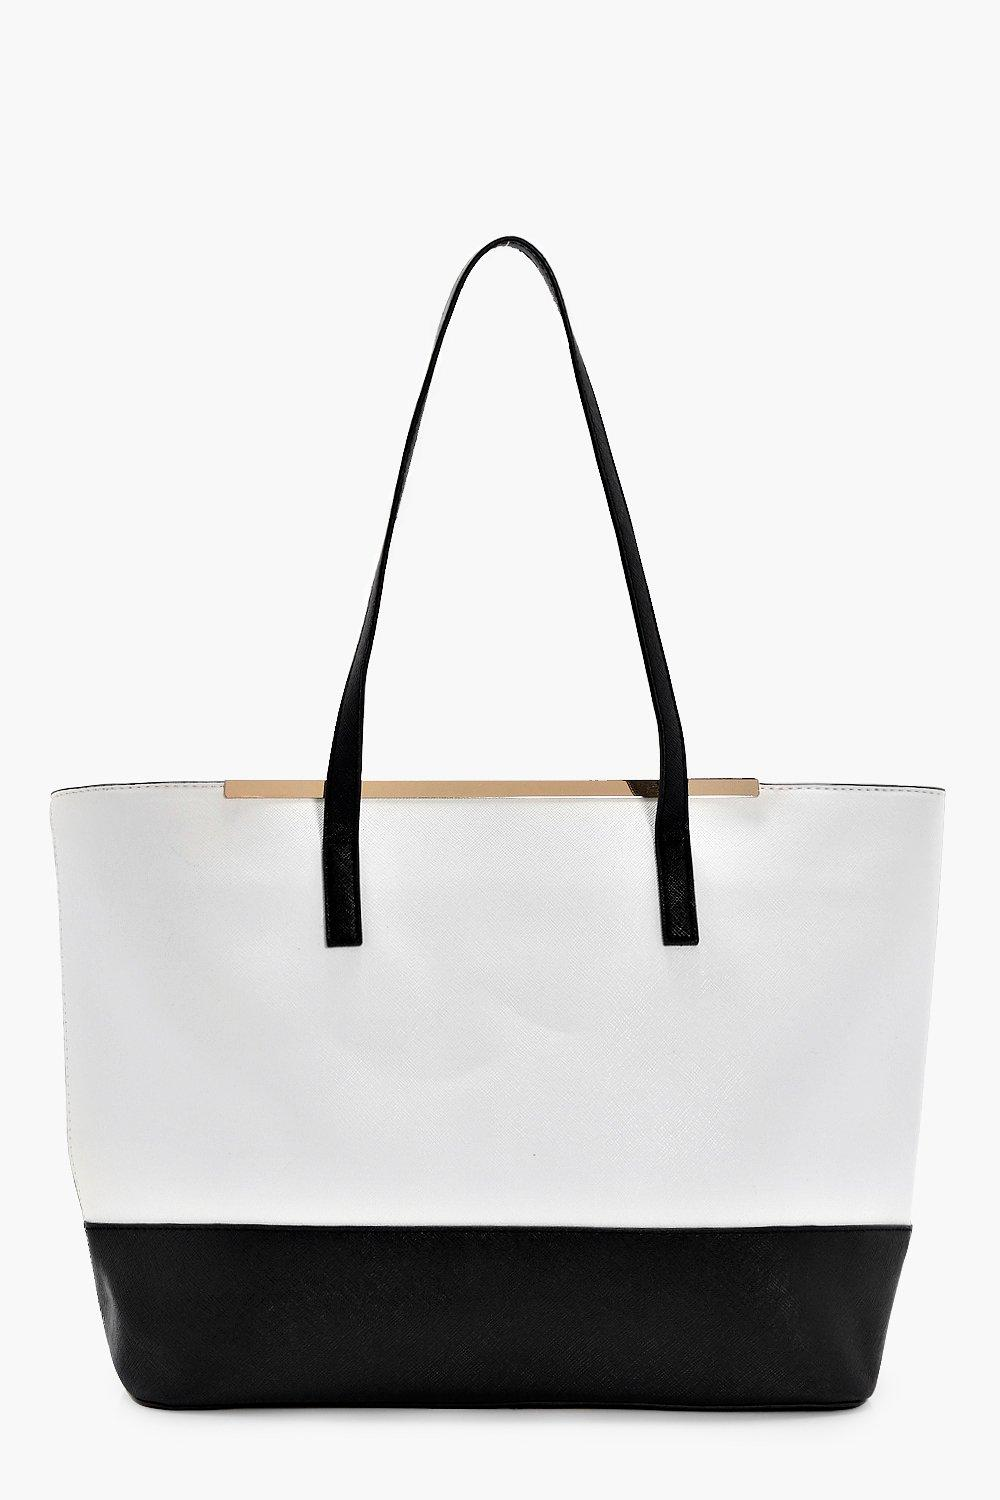 Mono Shopper Tote - white - Ella Mono Shopper Tote